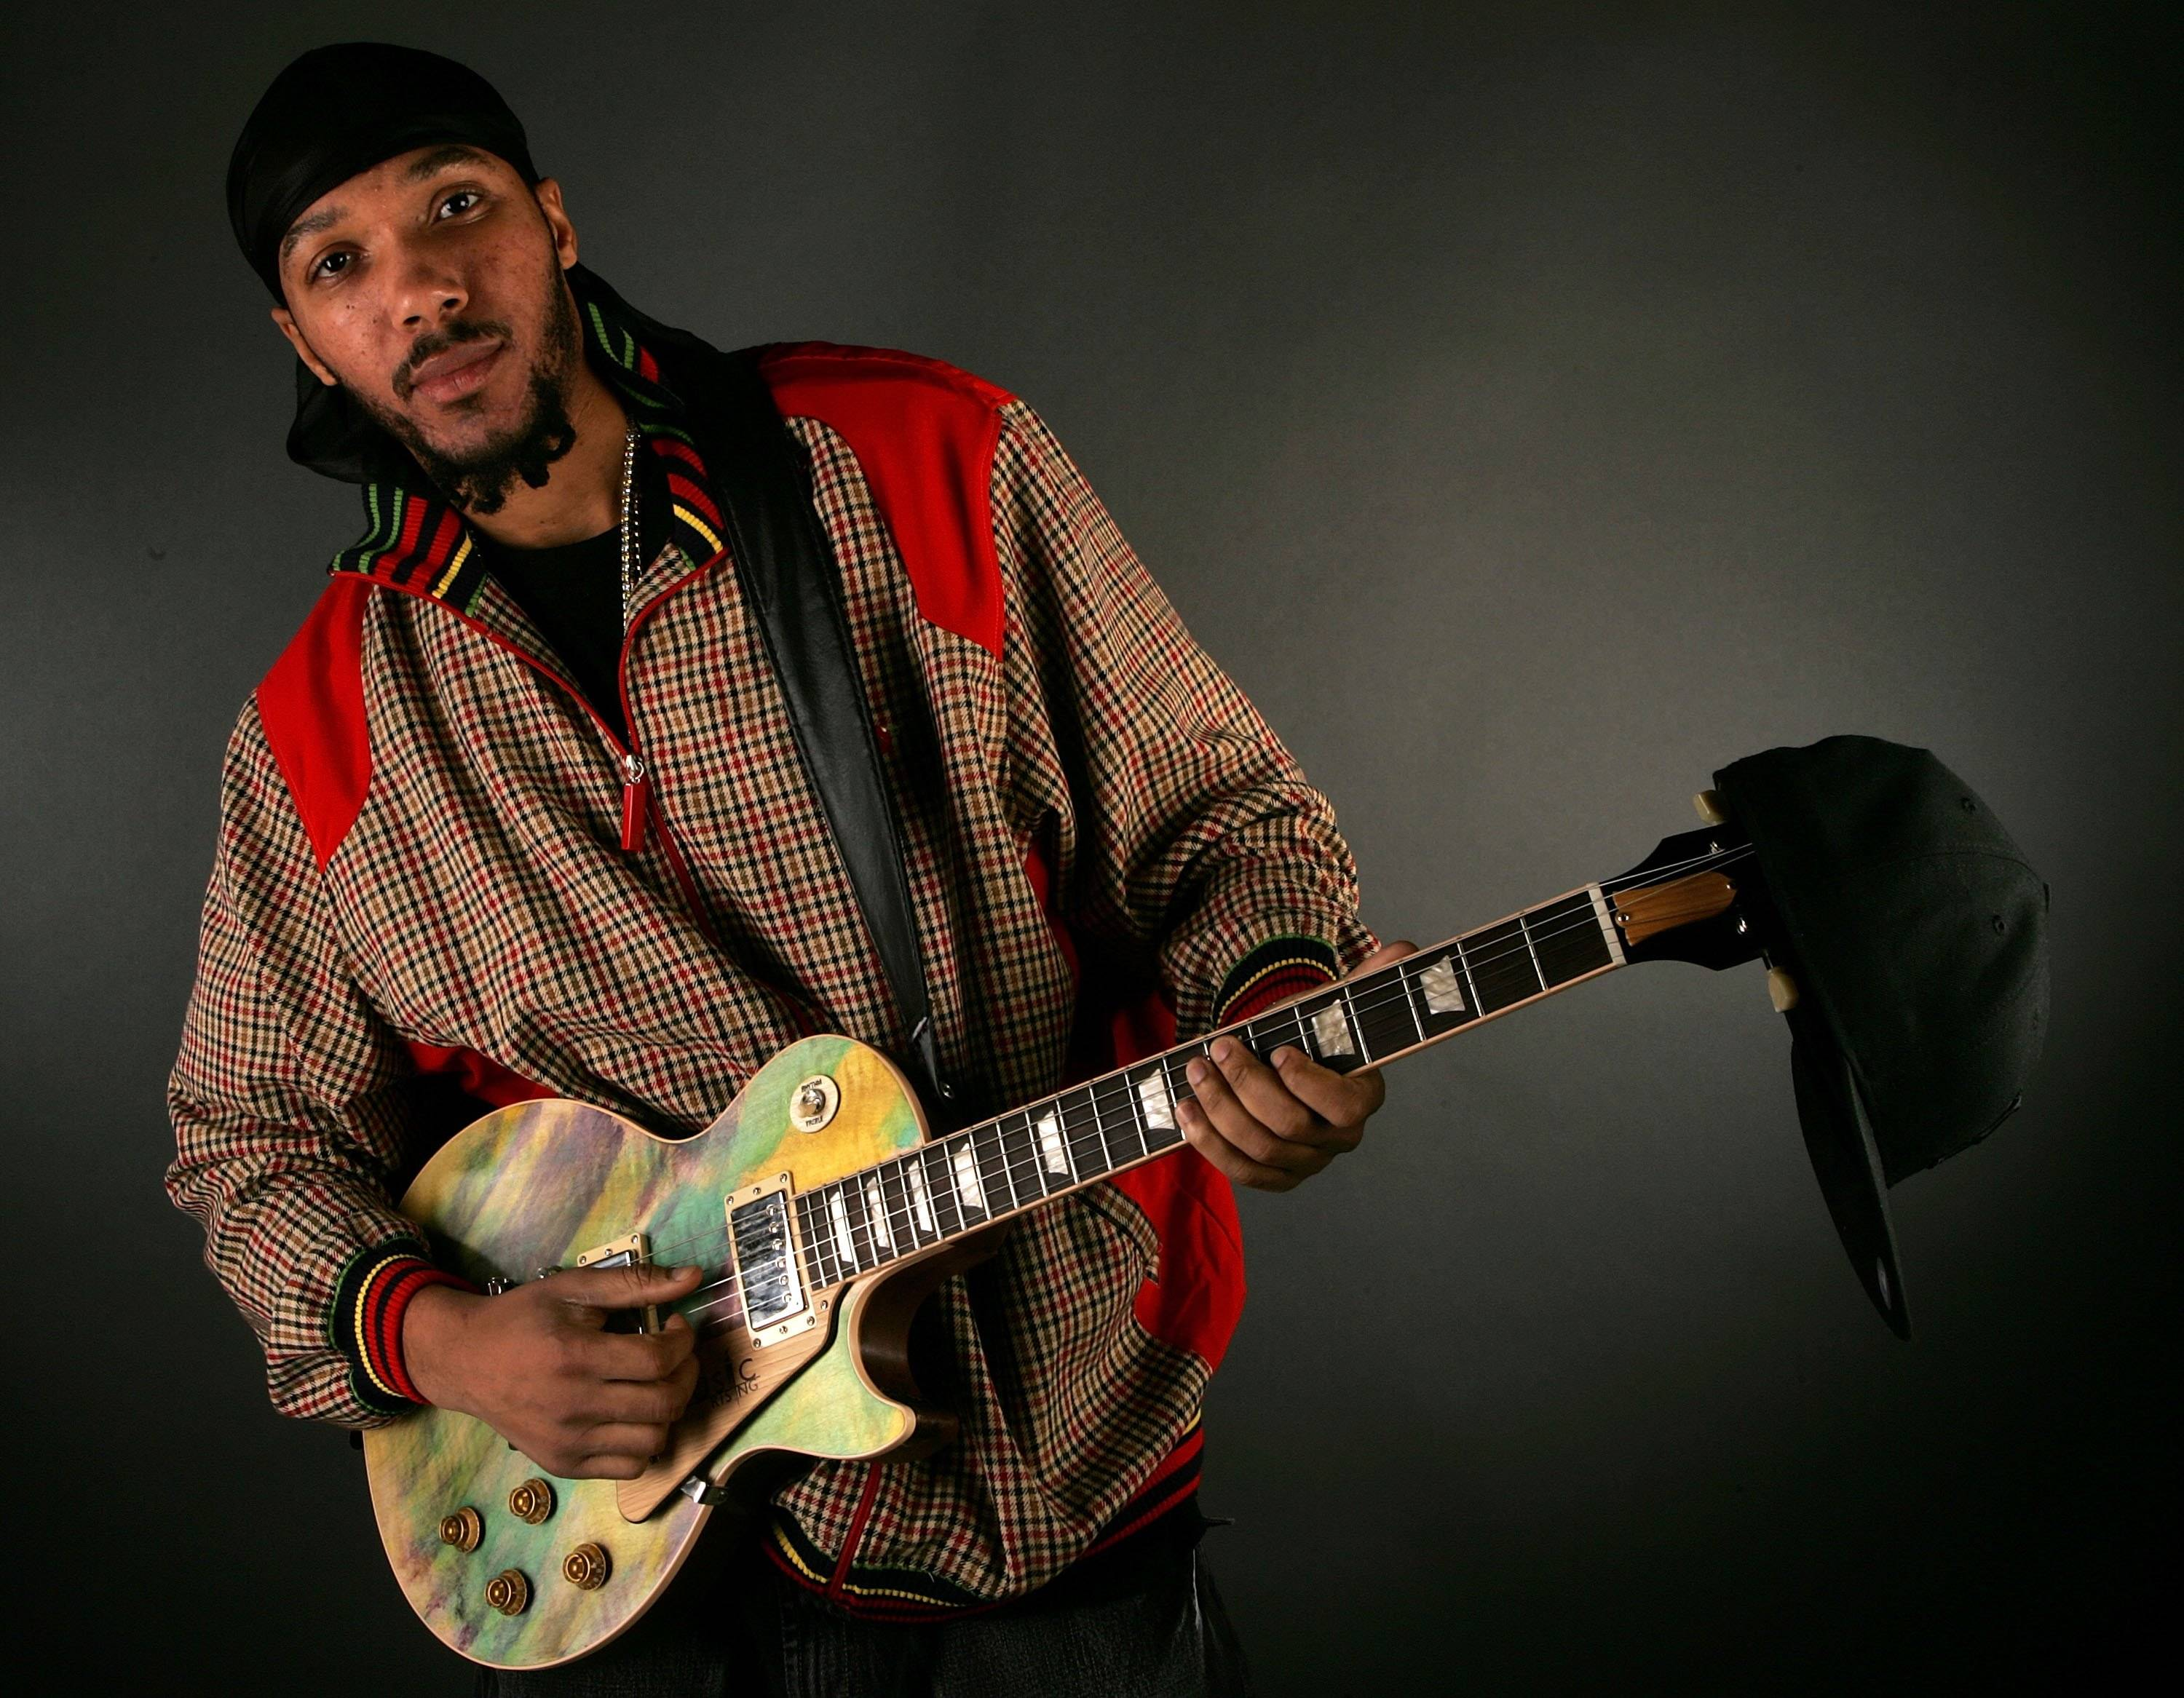 It?s Showtime - Lyfe began playing the acoustic guitar while in prison, and made his demo for the television show Showtime in Harlem. After getting released in 2002, he appeared on the show and won the competition five times.